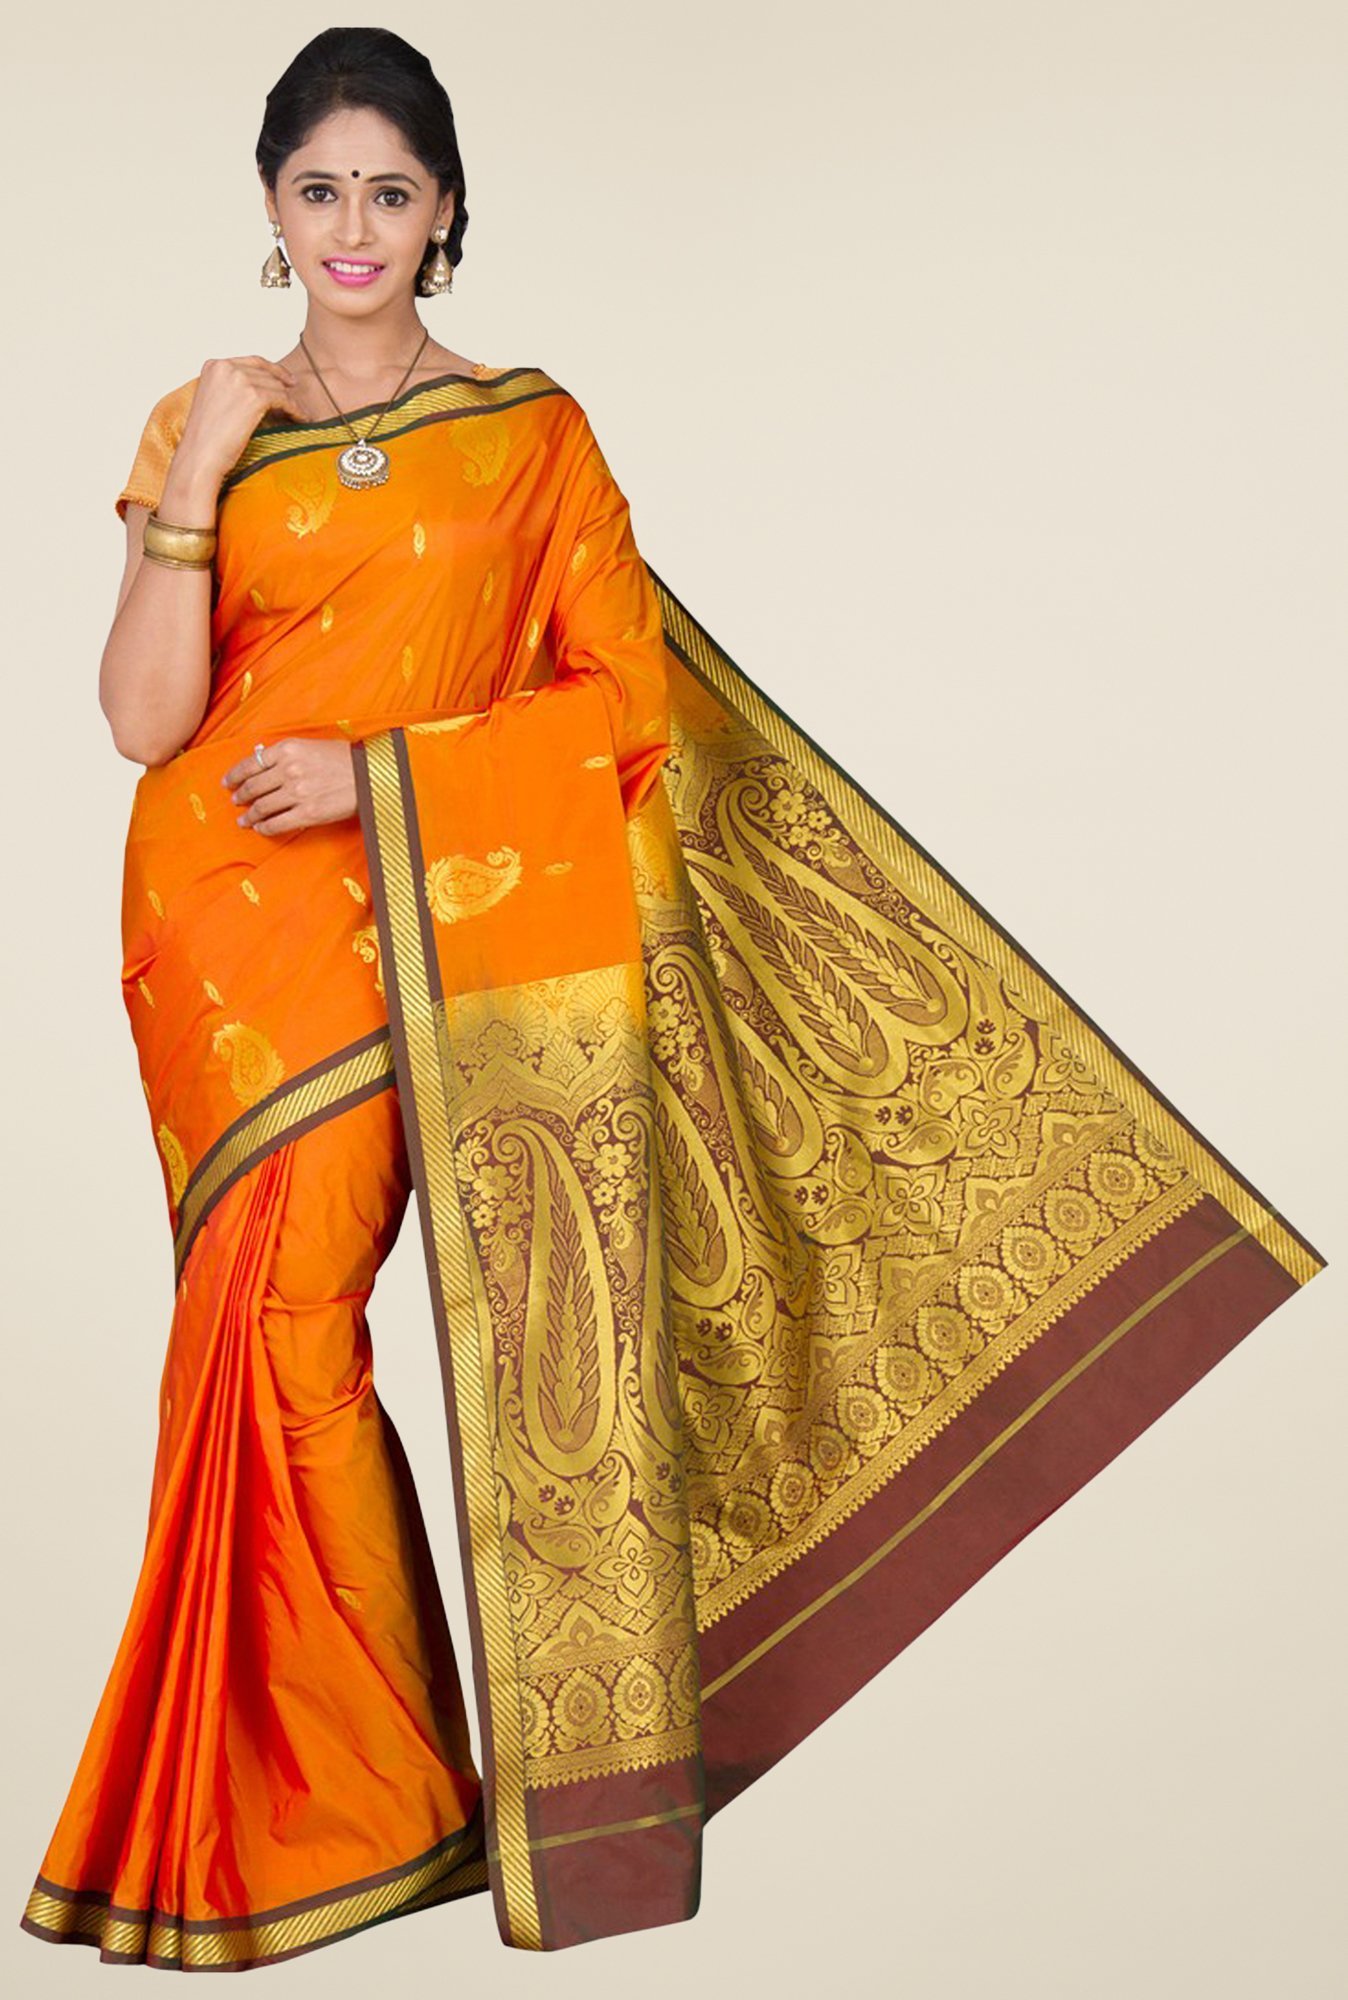 Pavecha's Orange Kanjivaram Silk Saree